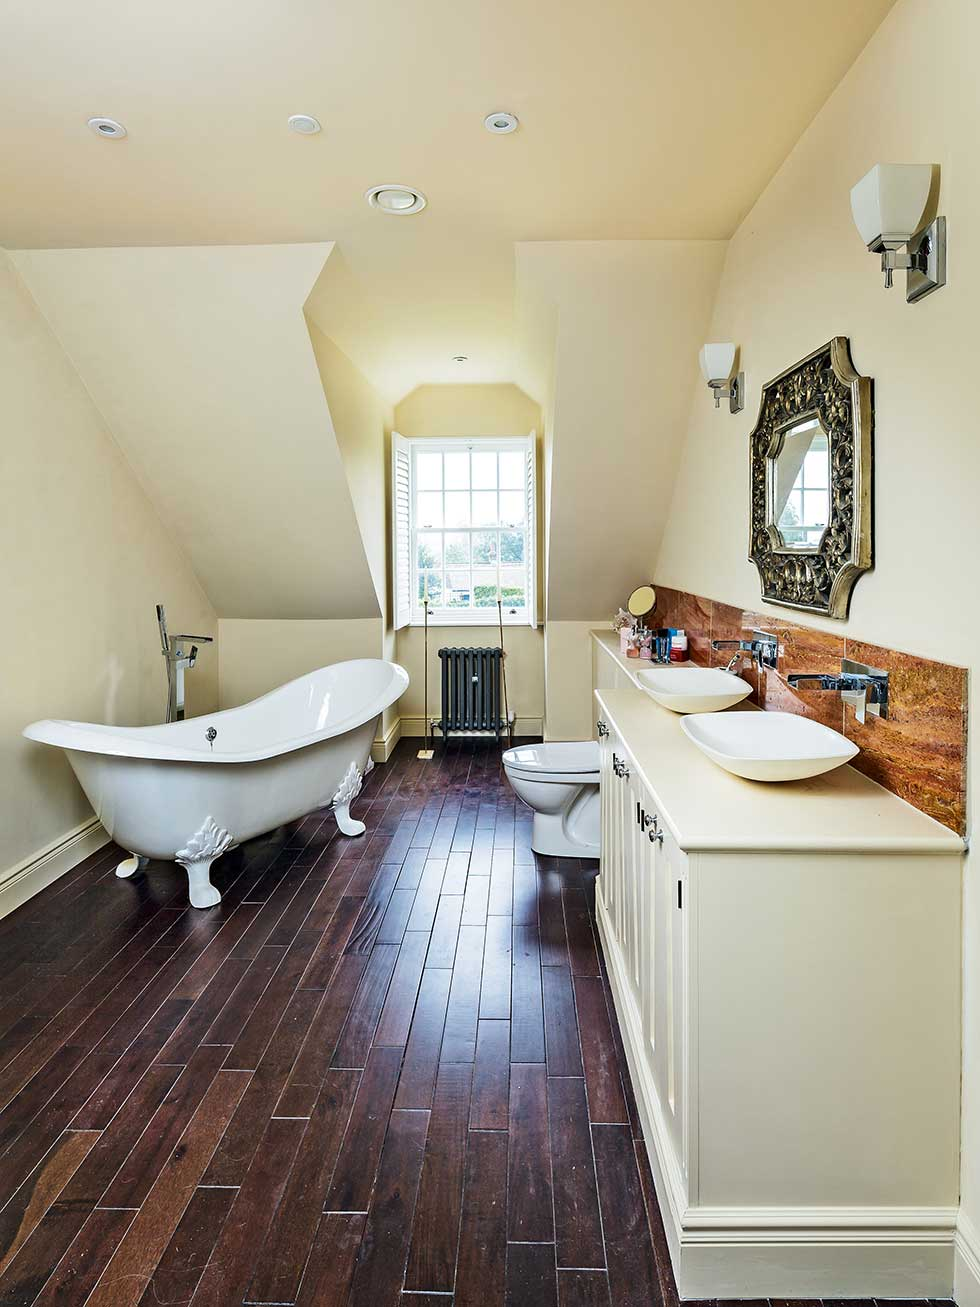 American-style self build neutral bathroom